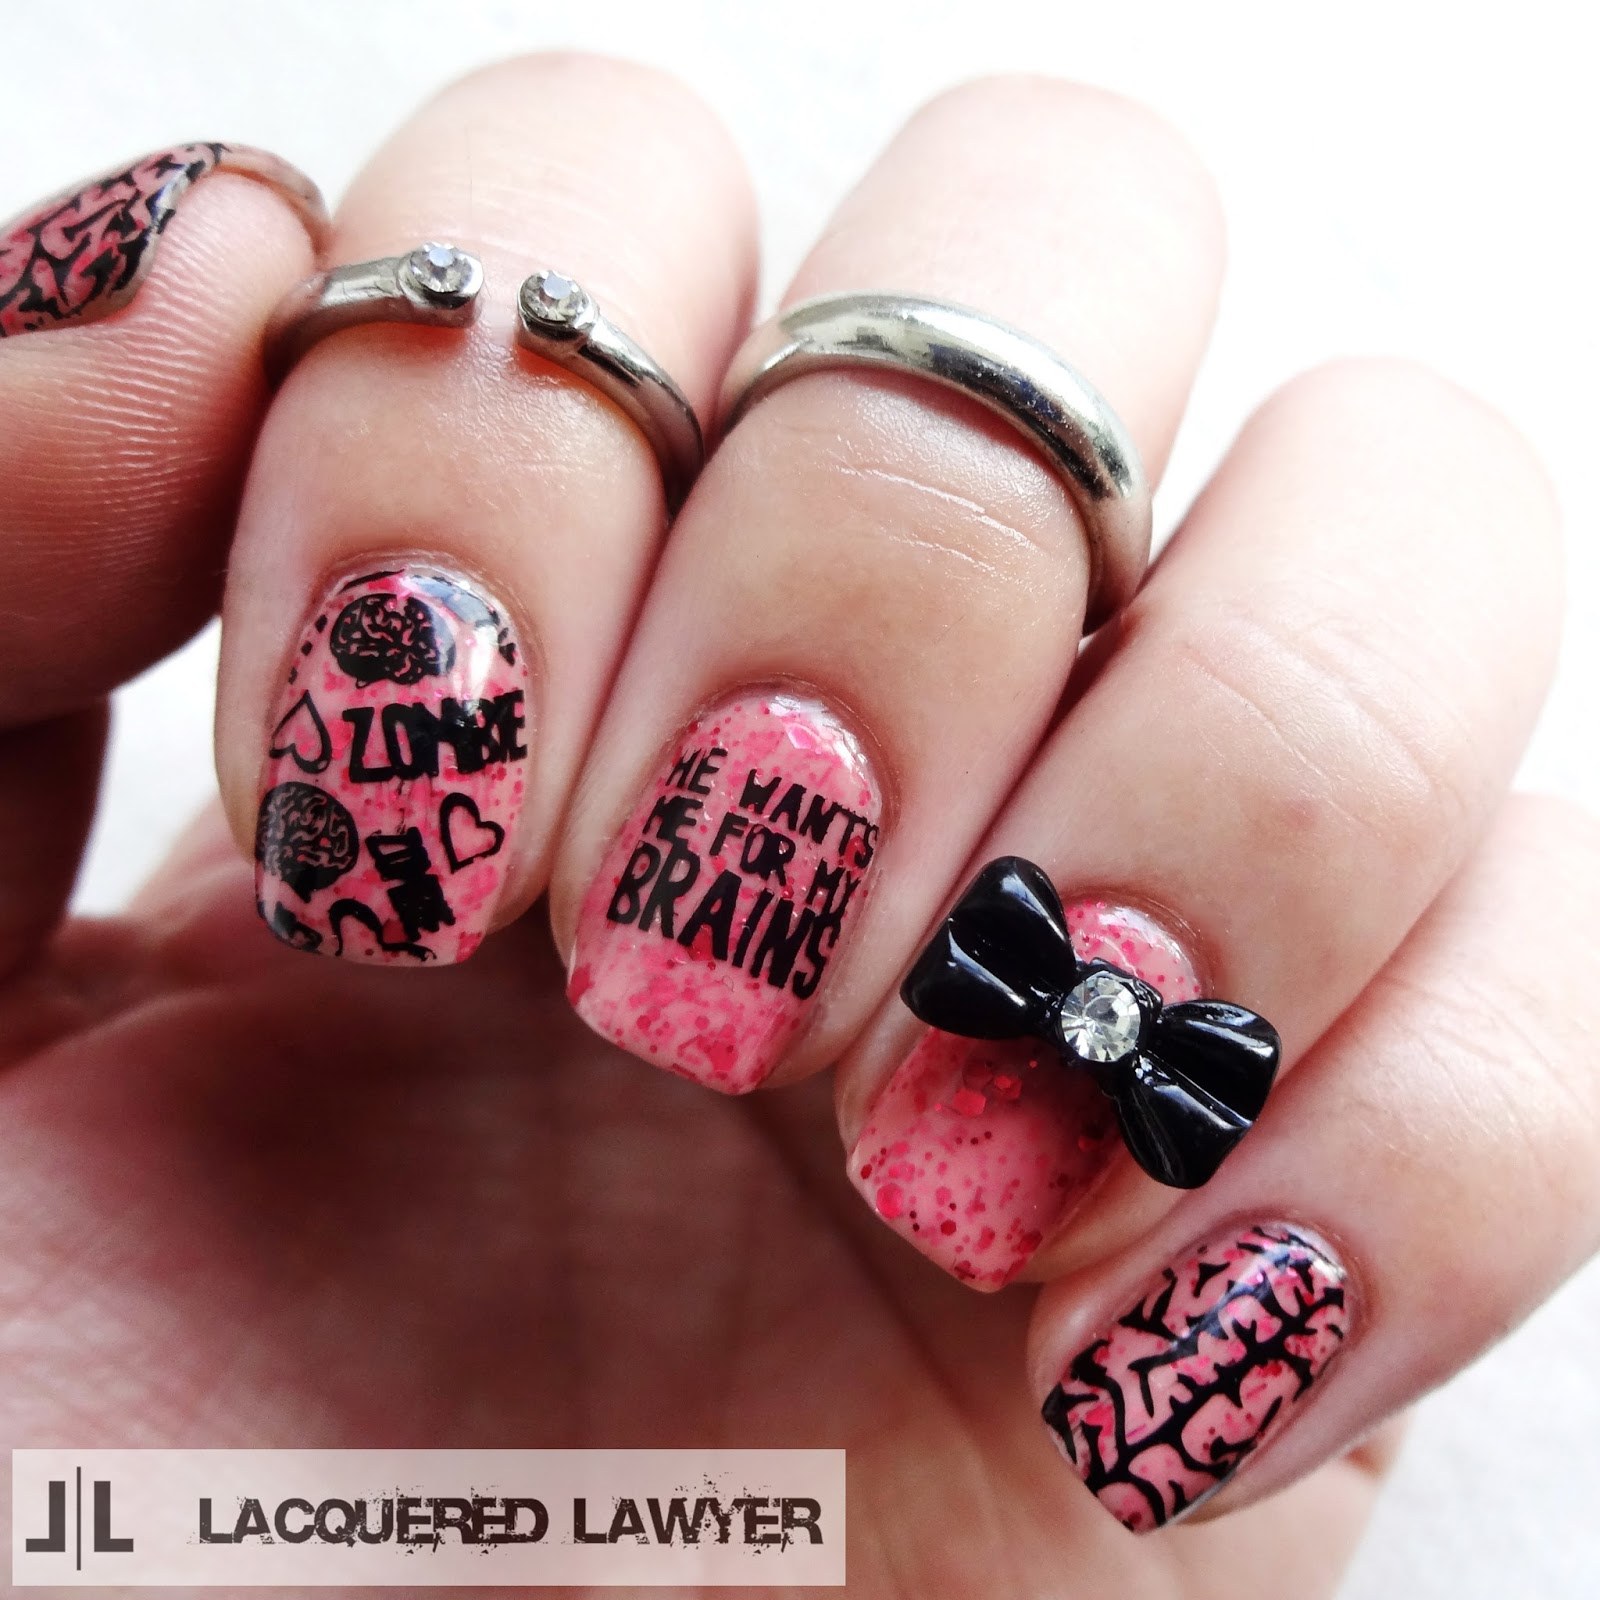 Lacquered Lawyer | Nail Art Blog: 2015